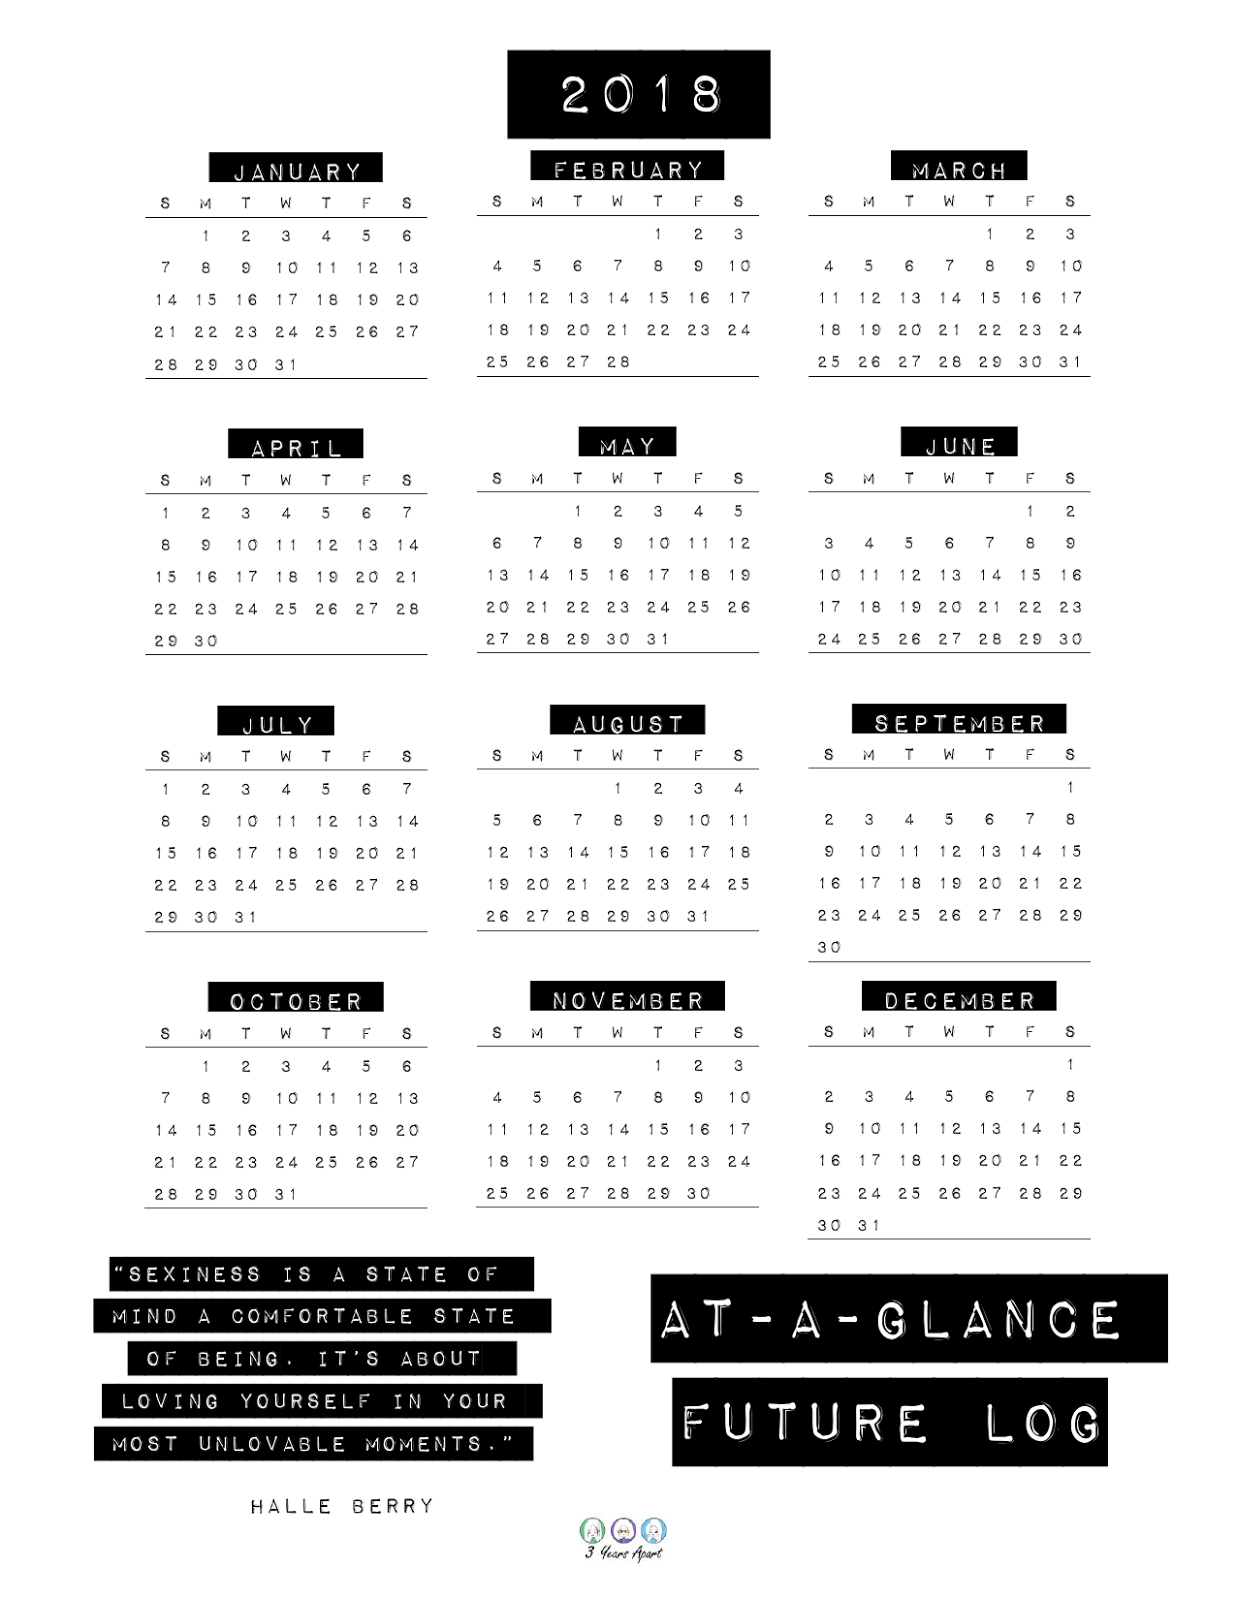 photo relating to Bullet Journal Stickers Printable named 2018 Annually at-a-Look and Foreseeable future Log Printable Cost-free